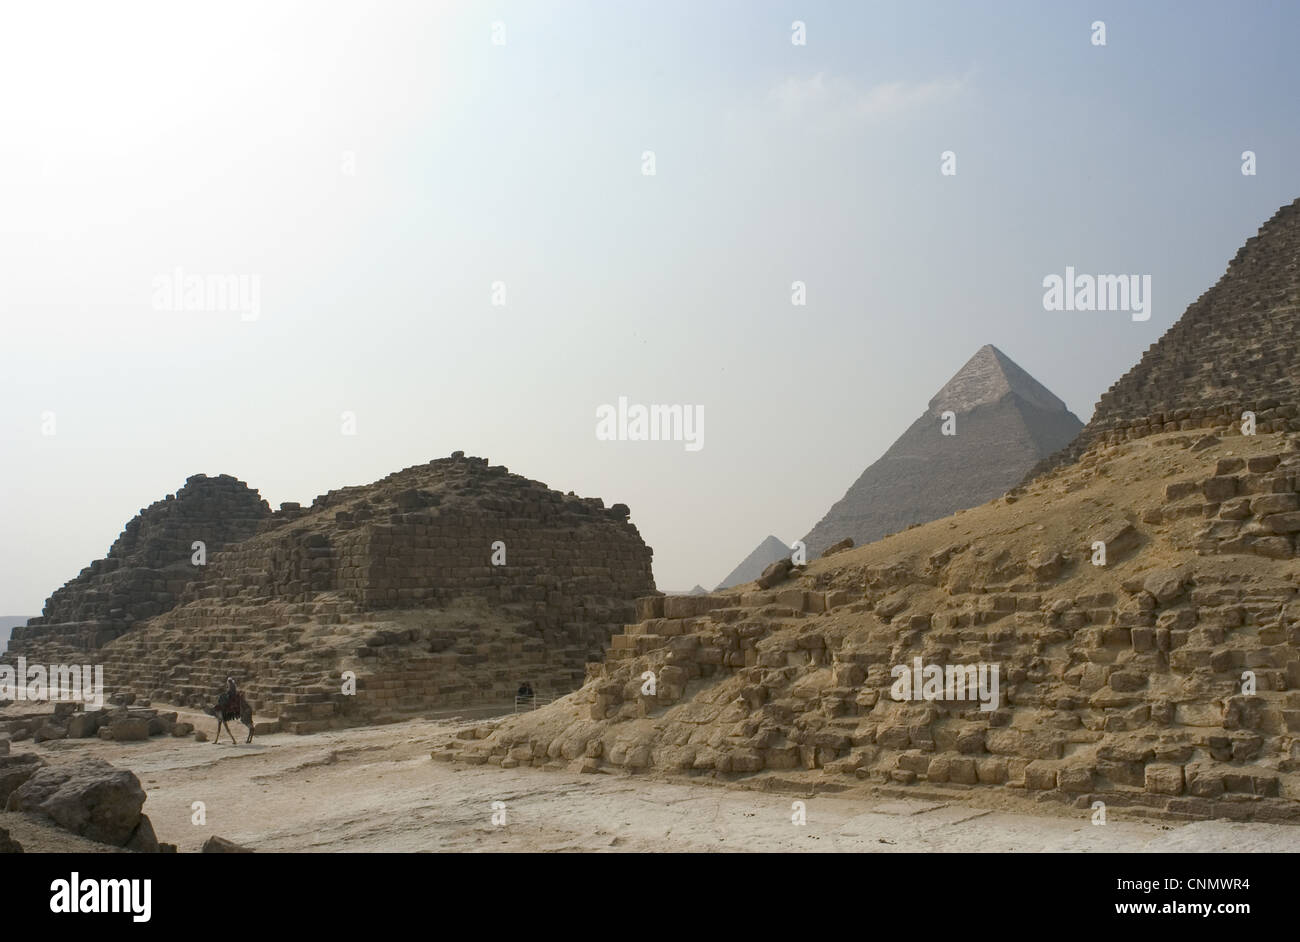 Egypt. Satellite pyramids of the Great Pyramid of Khufu known as The Pyramids of Queens. G 1-a, G 1-b and G1-c. - Stock Image